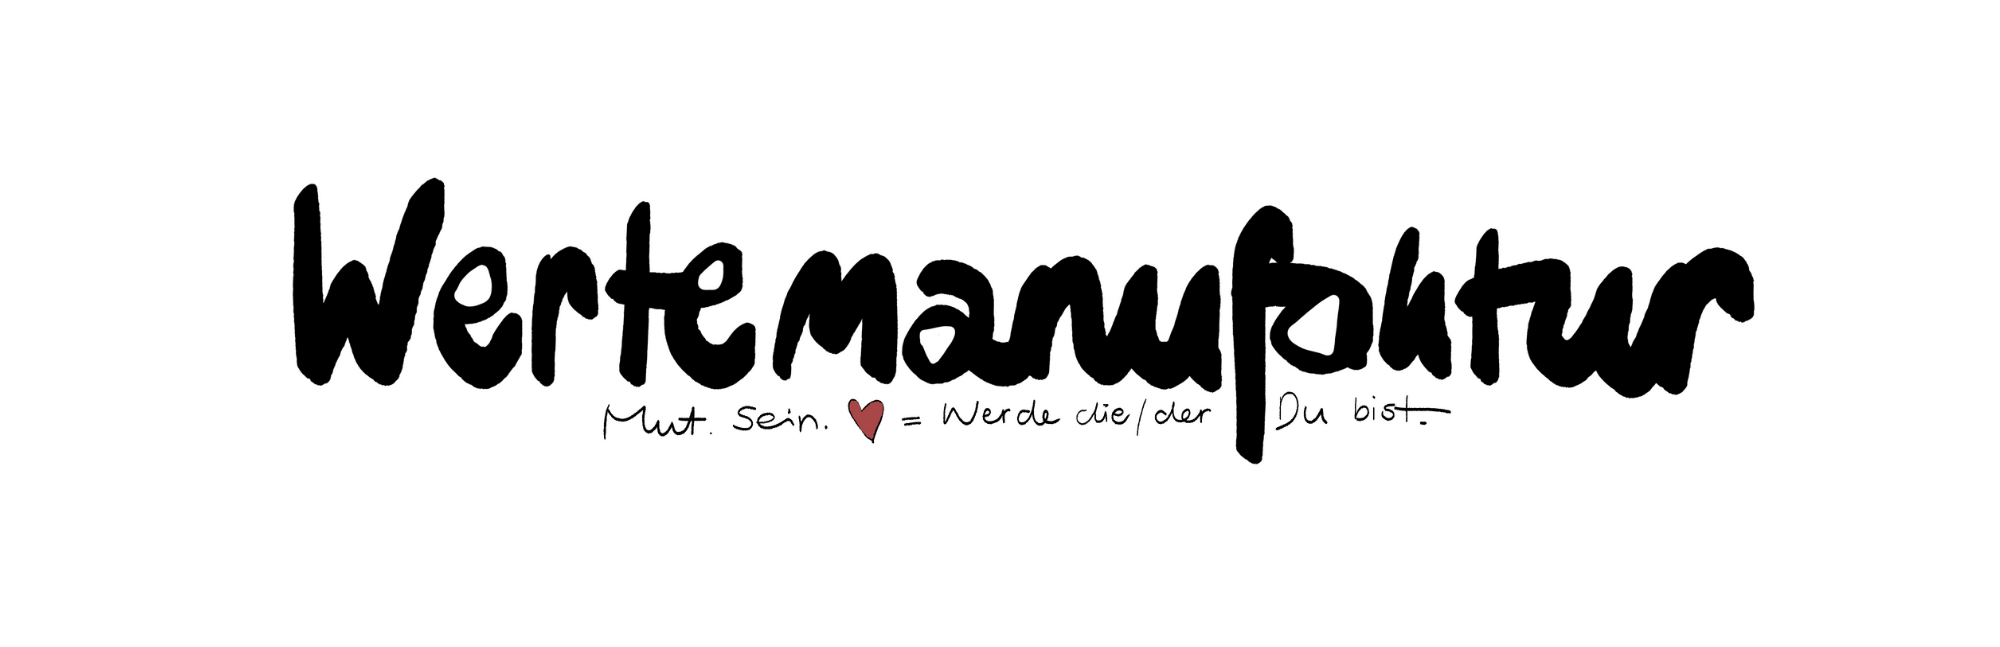 Header Wertemanufaktur by Sandra Elsig